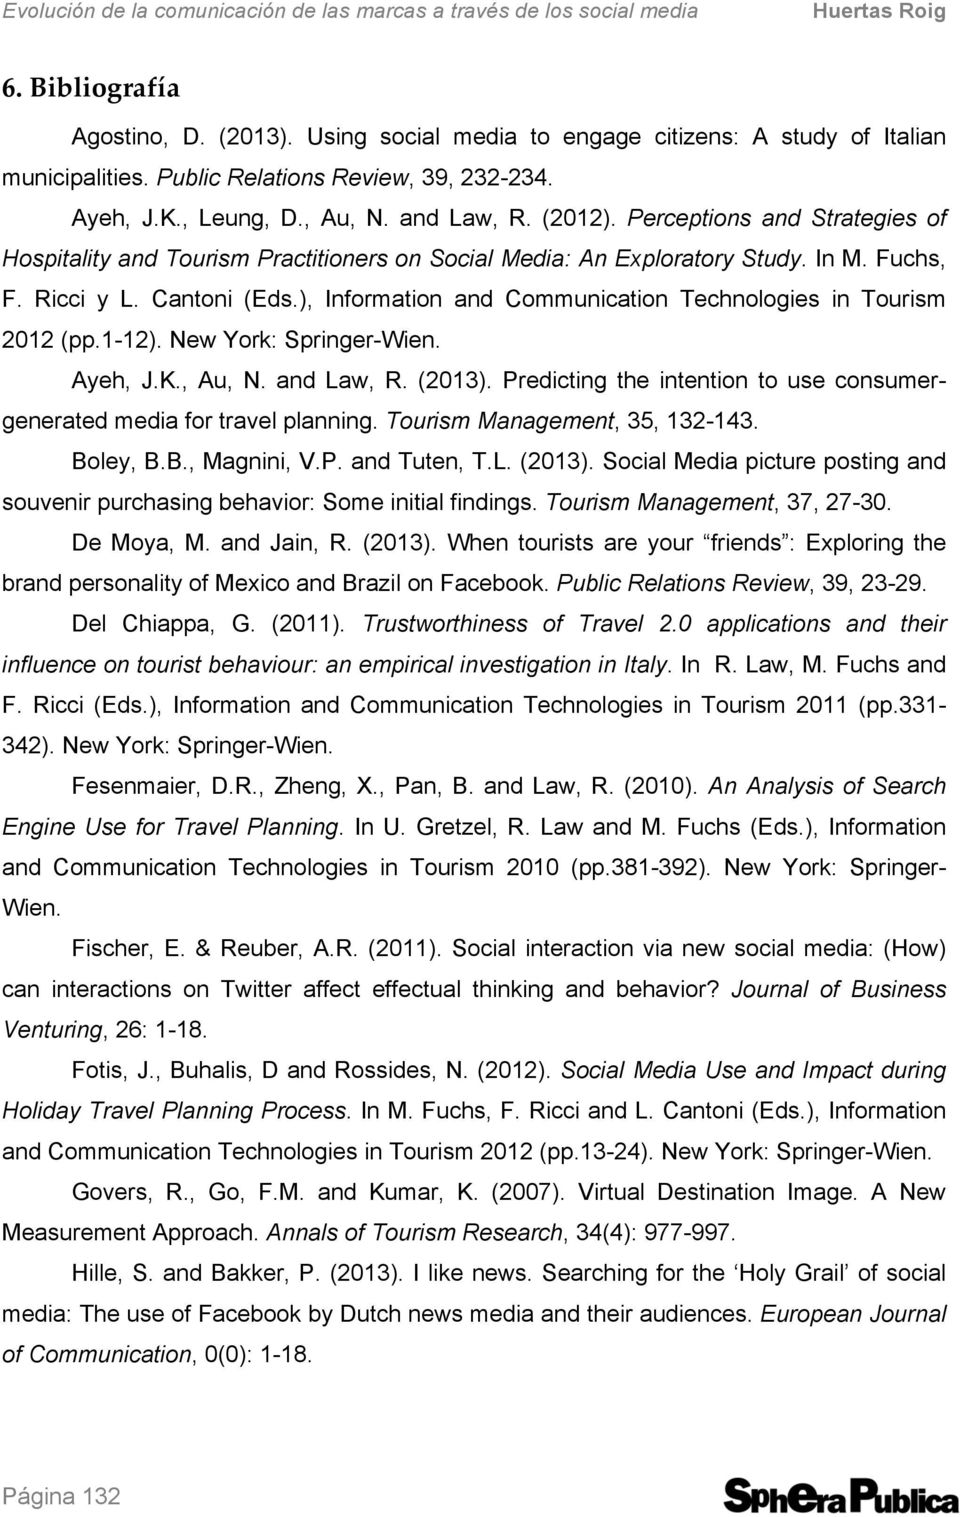 Fuchs, F. Ricci y L. Cantoni (Eds.), Information and Communication Technologies in Tourism 2012 (pp.1-12). New York: Springer-Wien. Ayeh, J.K., Au, N. and Law, R. (2013).